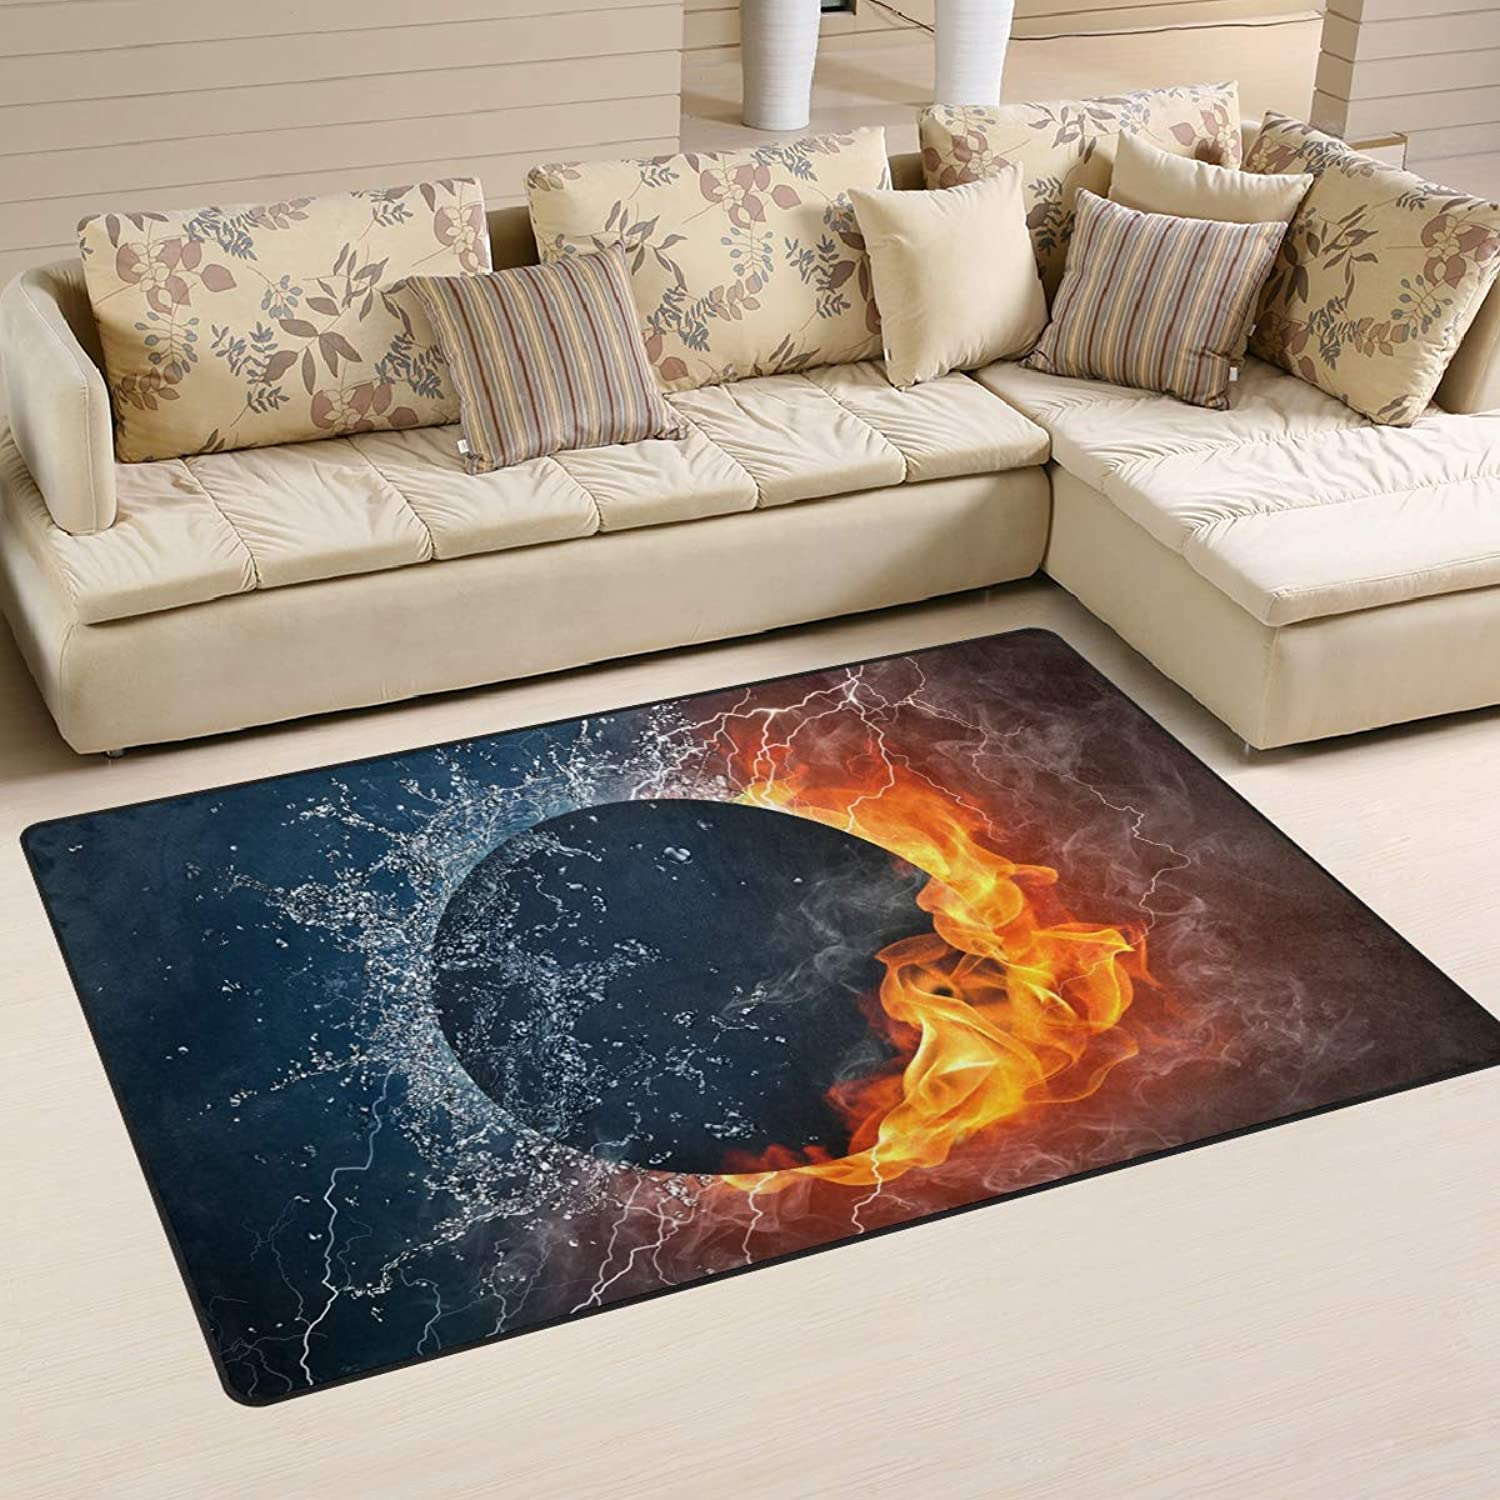 Area Rugs Doormats Abstract Moon Water Fire 5'x3'3 (60x39 Inches) Non-Slip Floor Mat Soft Carpet for Living Dining Bedroom Home